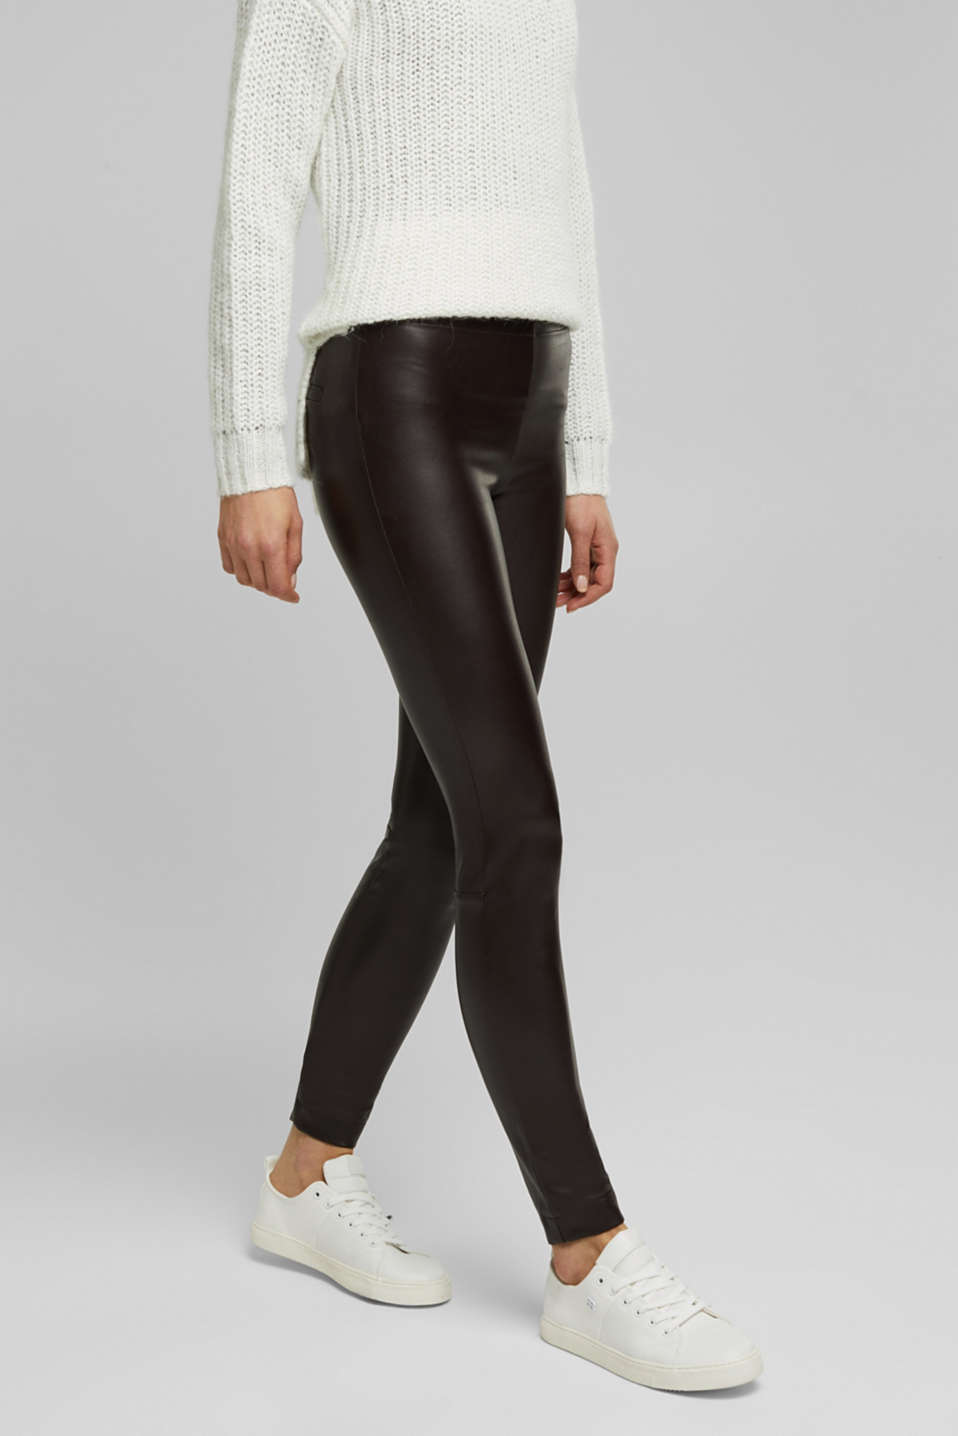 Esprit - Leggings de polipiel